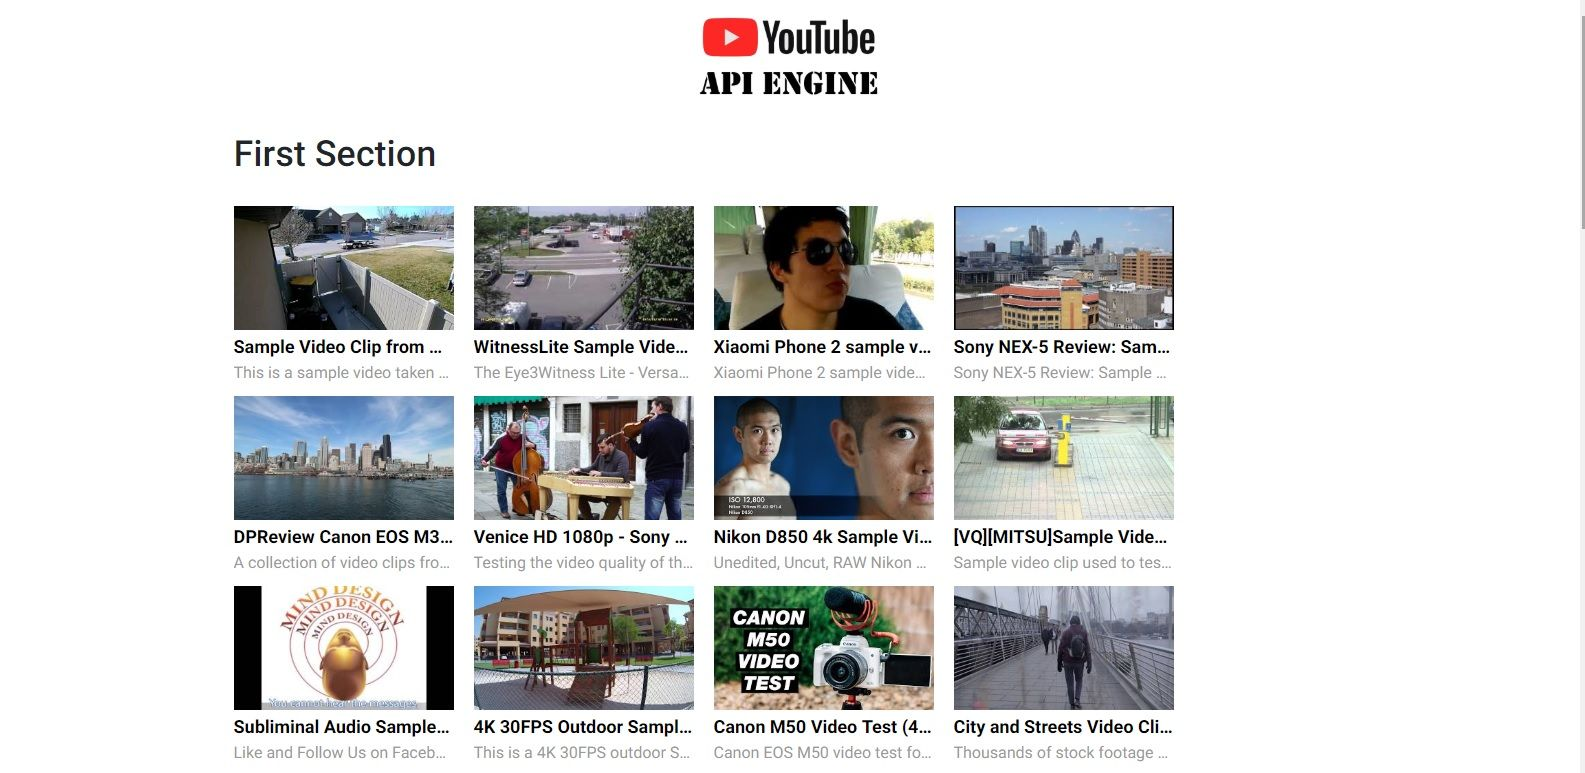 YouTube API Engine Screenshot 2